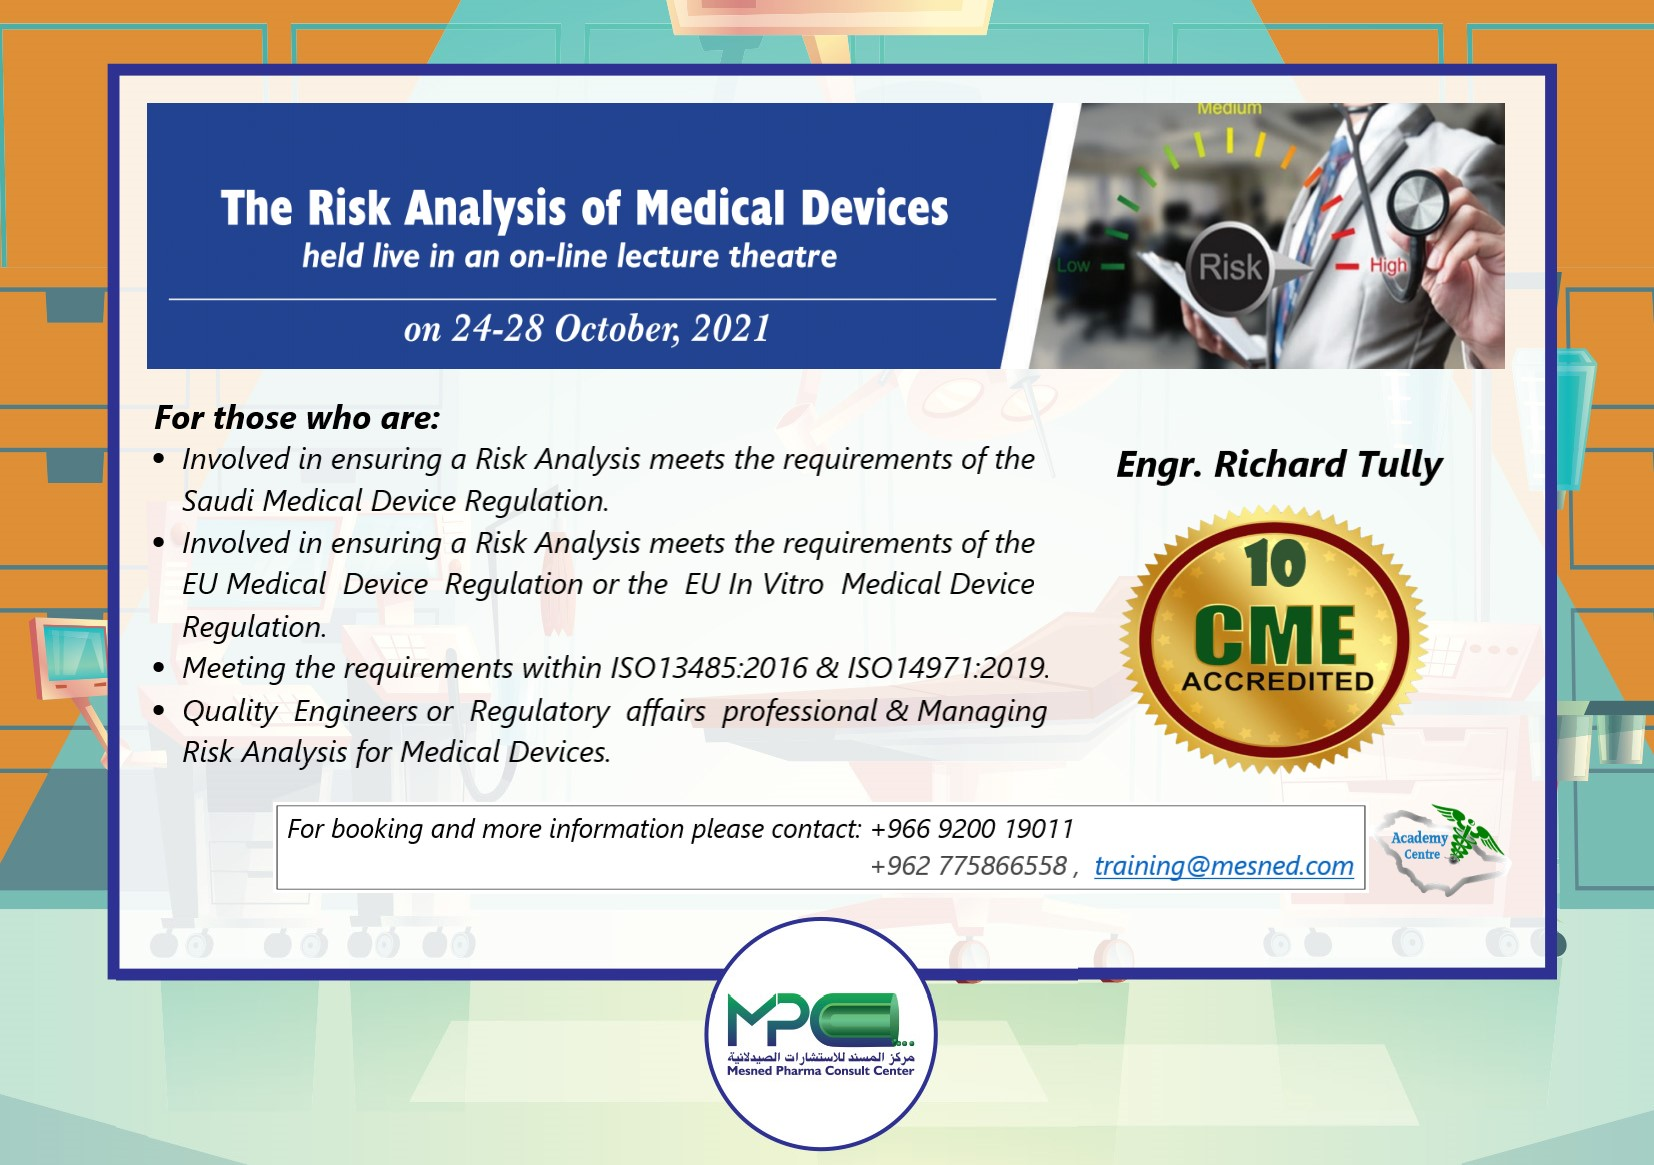 The Risk Analysis of Medical Devices